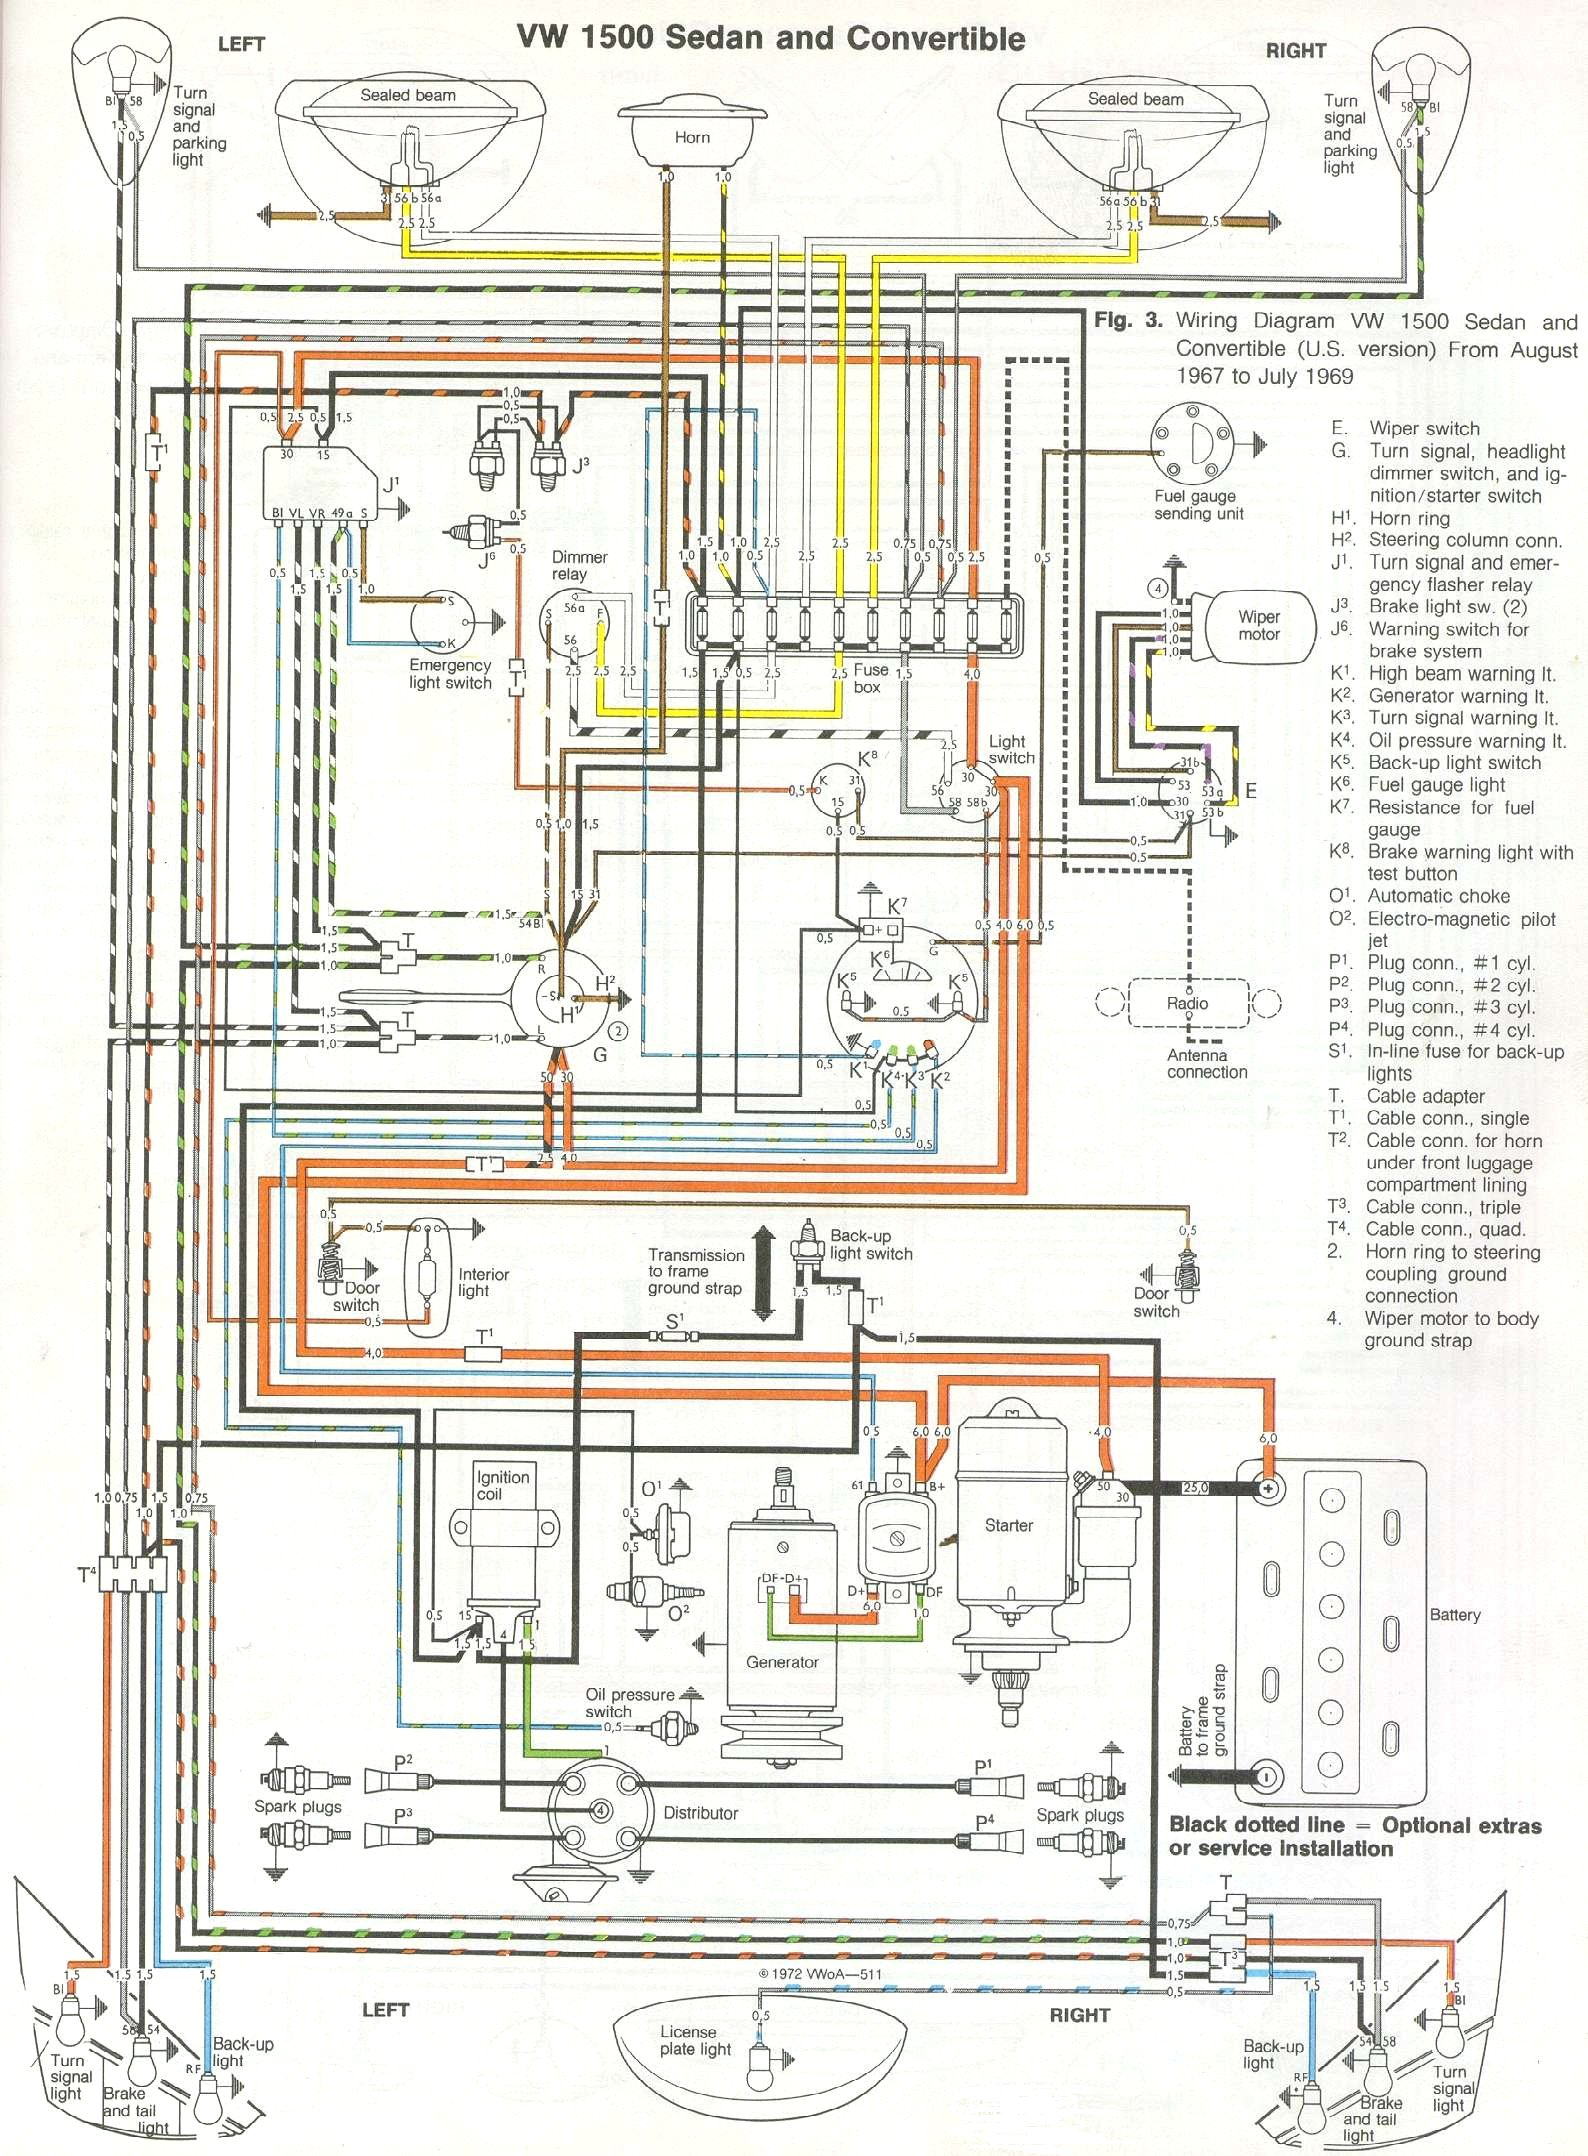 bug_6869 thesamba com type 1 wiring diagrams 1973 vw wiring diagram at nearapp.co